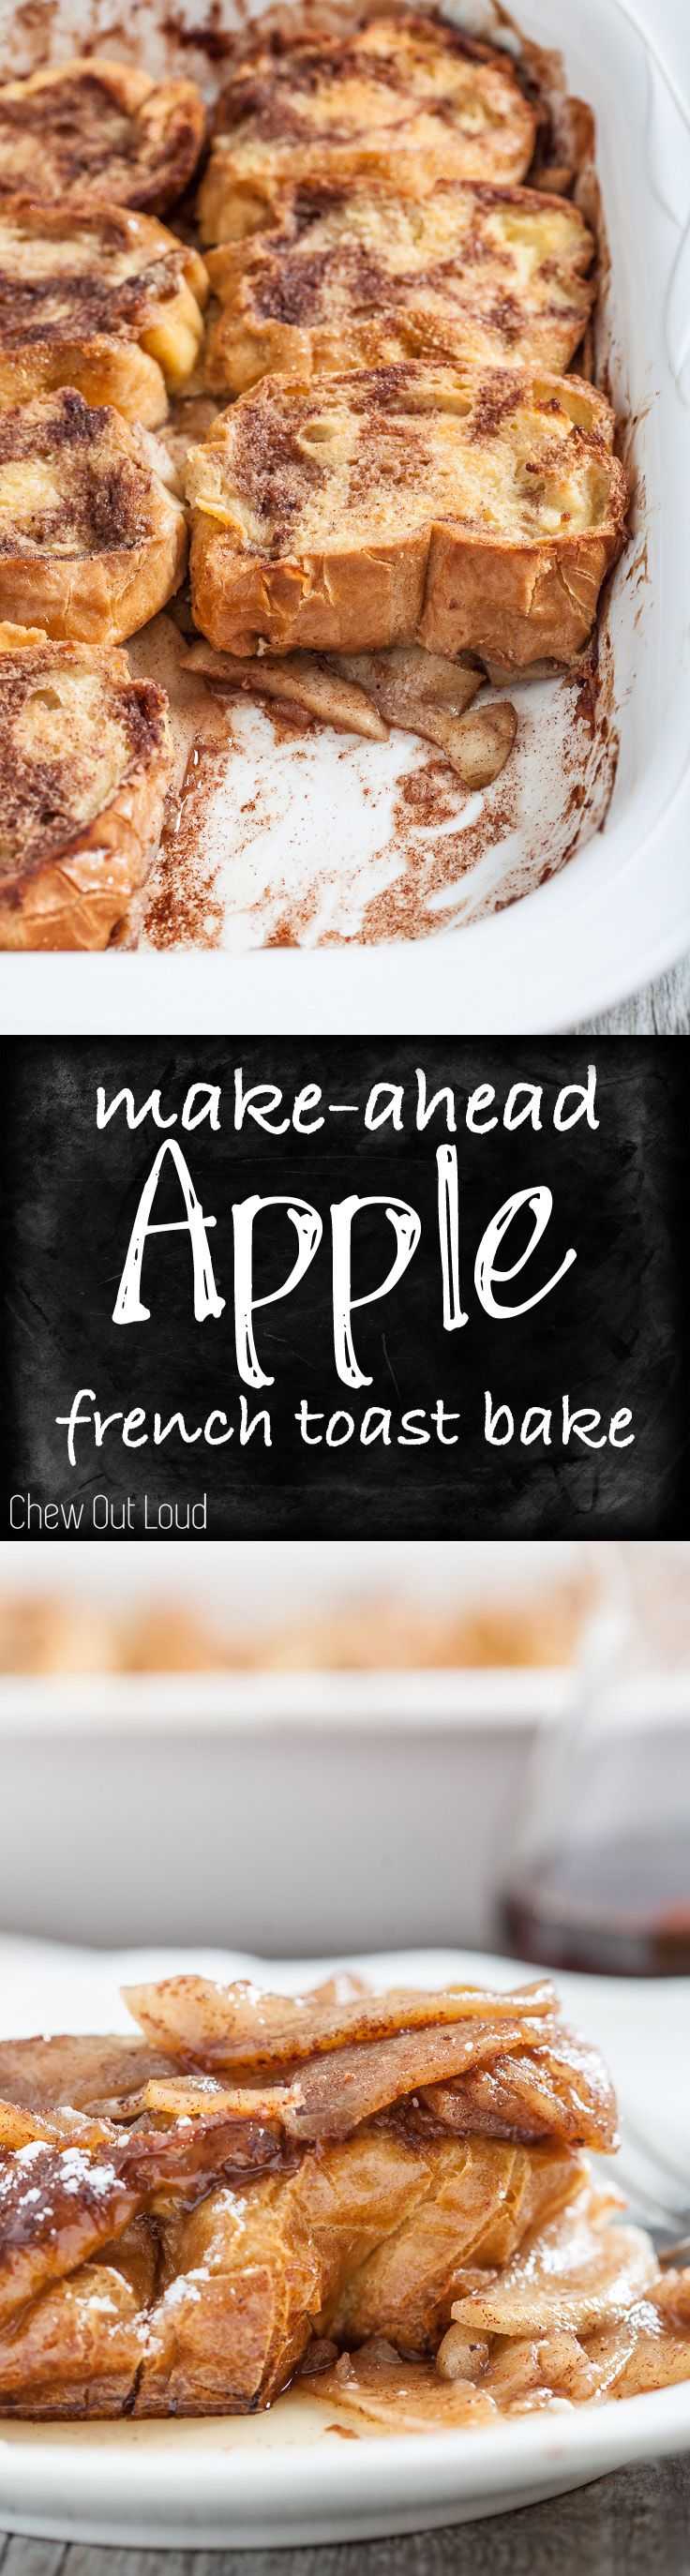 This Upside-Down Apple French Toast Bake is make-ahead easy! prepare it all the night before, sleep in, and pop it in the oven the next morning! It's hearty, delish, and not soggy at all. #apple #frenchtoast #breakfast